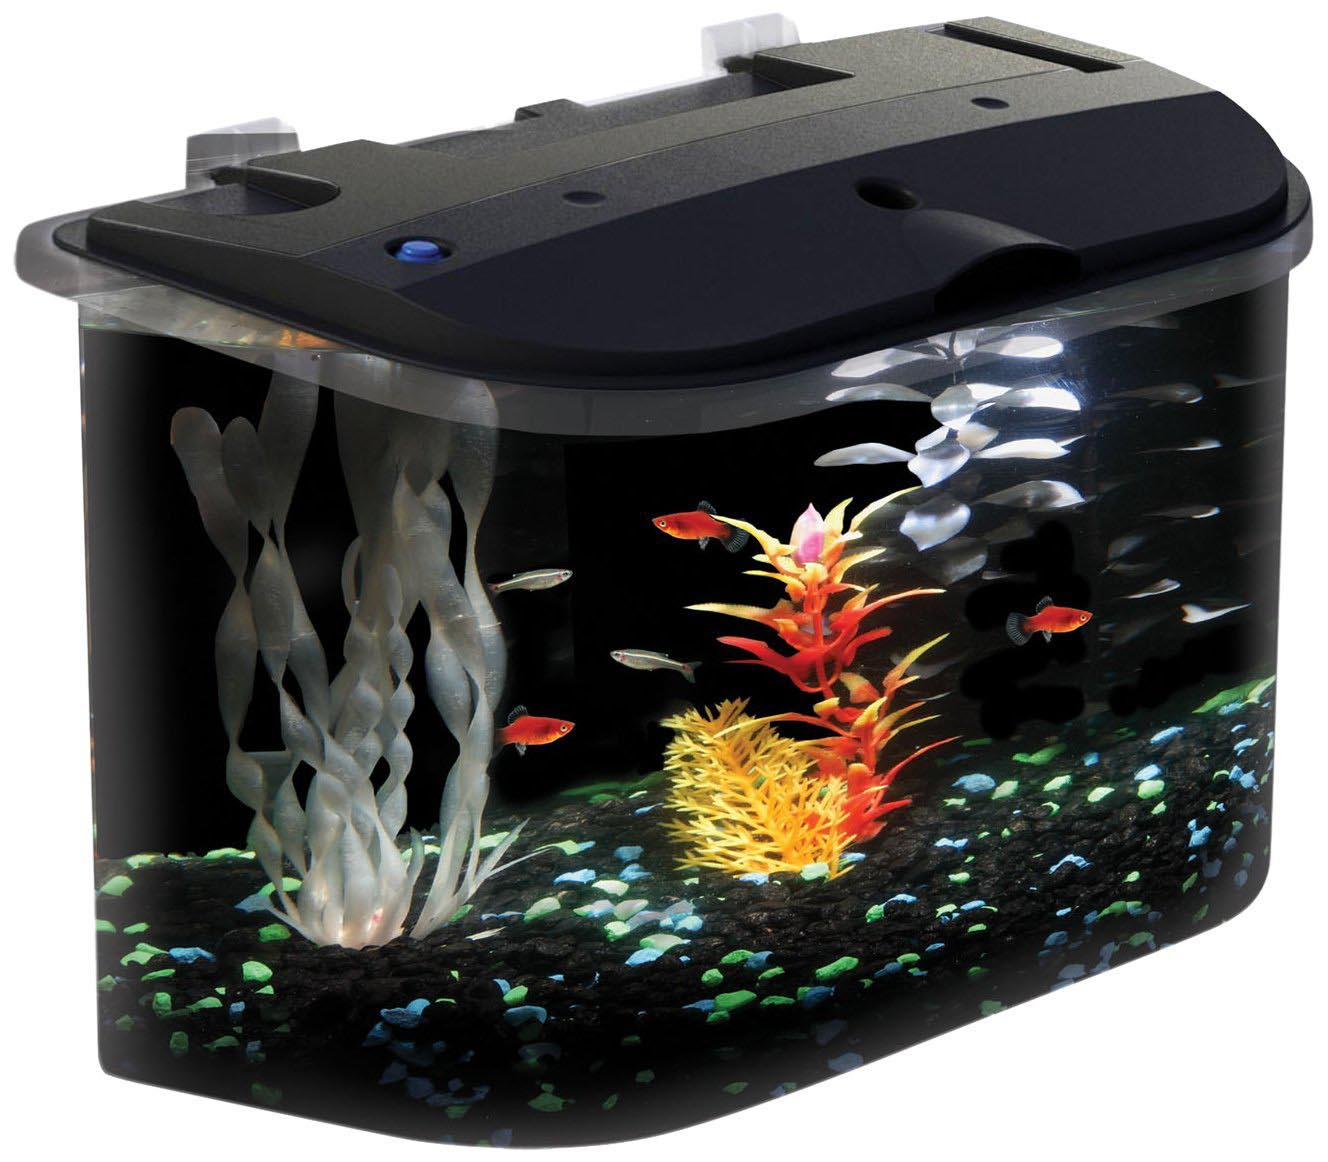 How to set up a betta fish aquarium aquarium design ideas for Betta fish tank with filter